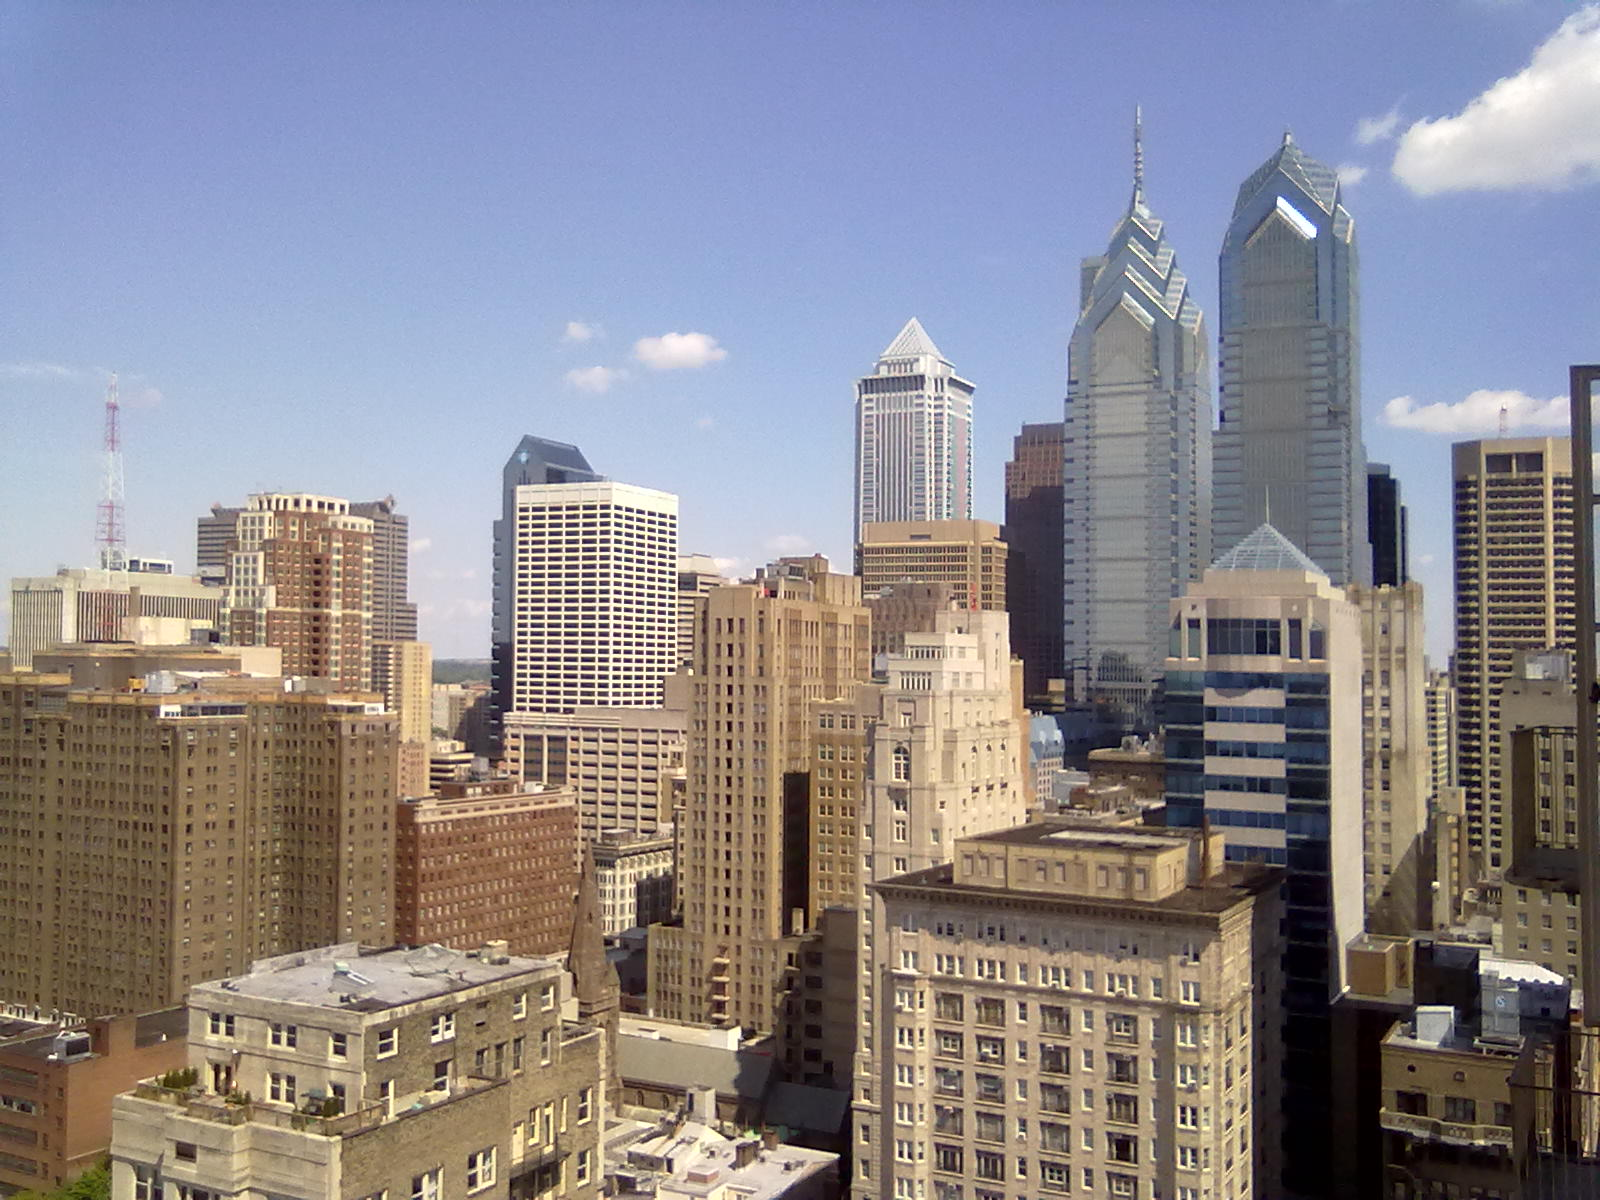 Philly skyline-111.jpg LA skyline vs. Philly skyline-05082011018.jpg ...